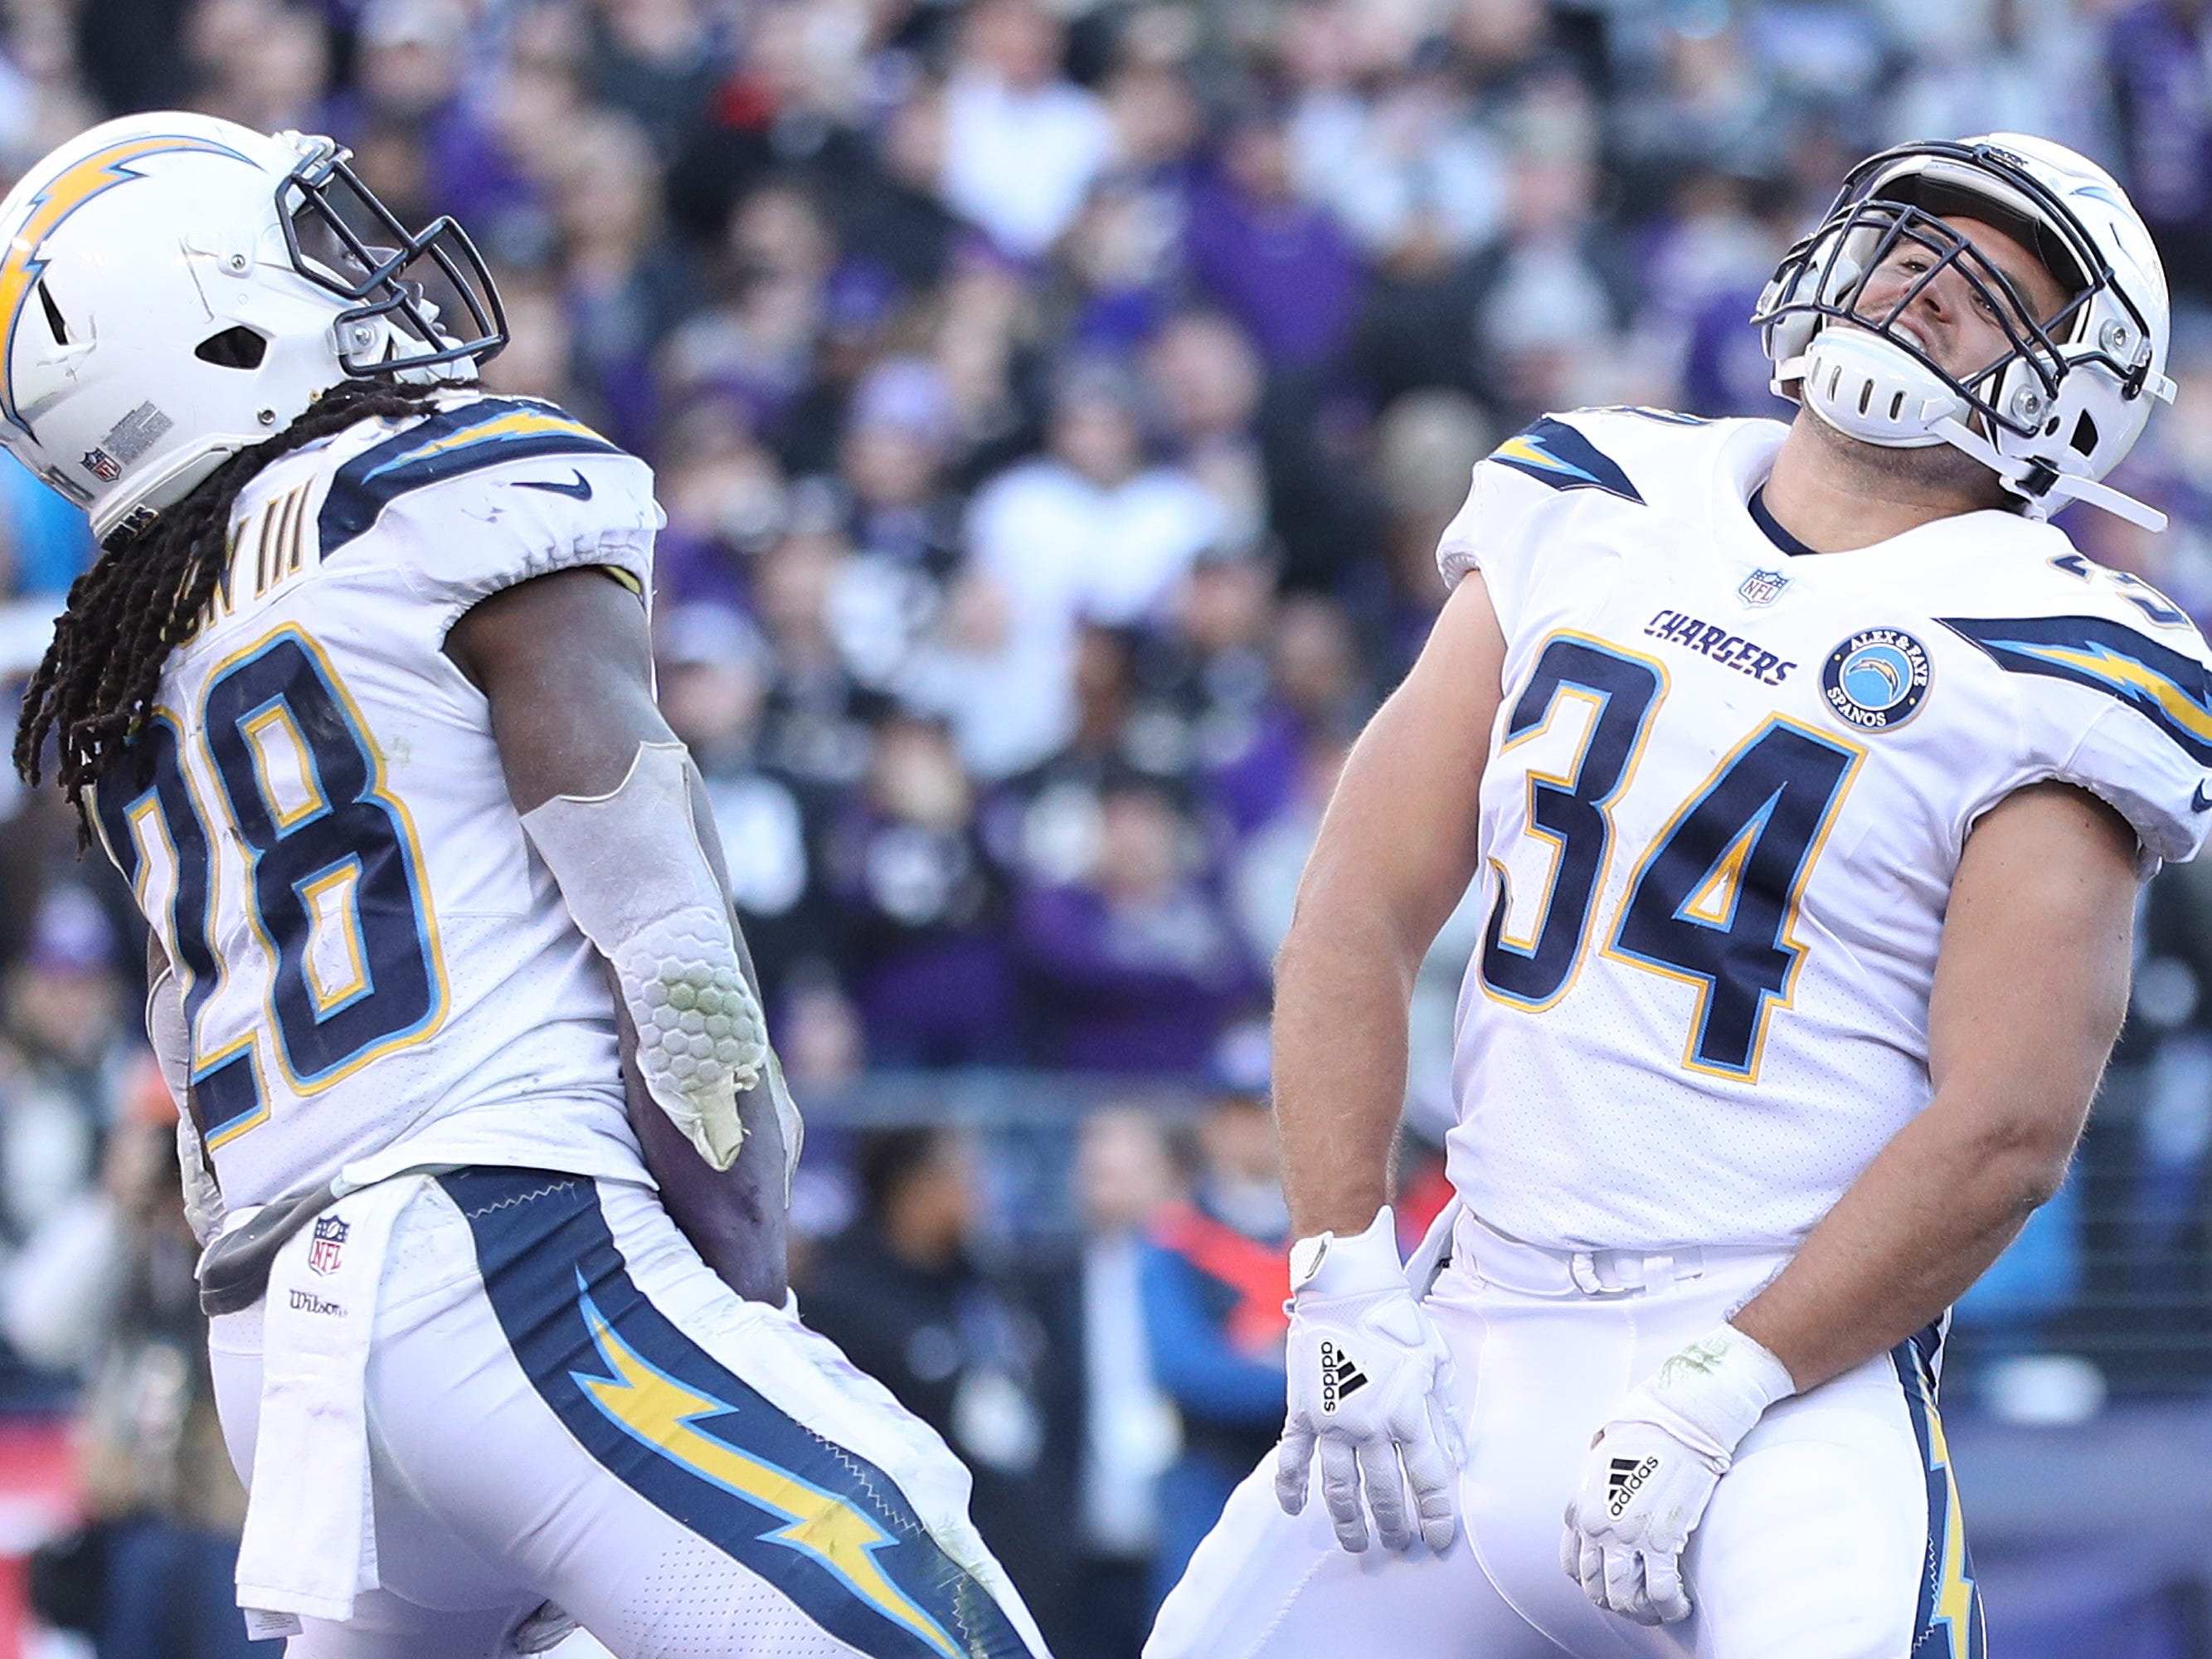 Melvin Gordon of the Los Angeles Chargers celebrates with Derek Watt (34) after scoring a one-yard touchdown against the Baltimore Ravens during the fourth quarter in the AFC Wild Card Playoff game at M&T Bank Stadium on Jan. 6, 2019 in Baltimore, Maryland. The Chargers won, 23-17.